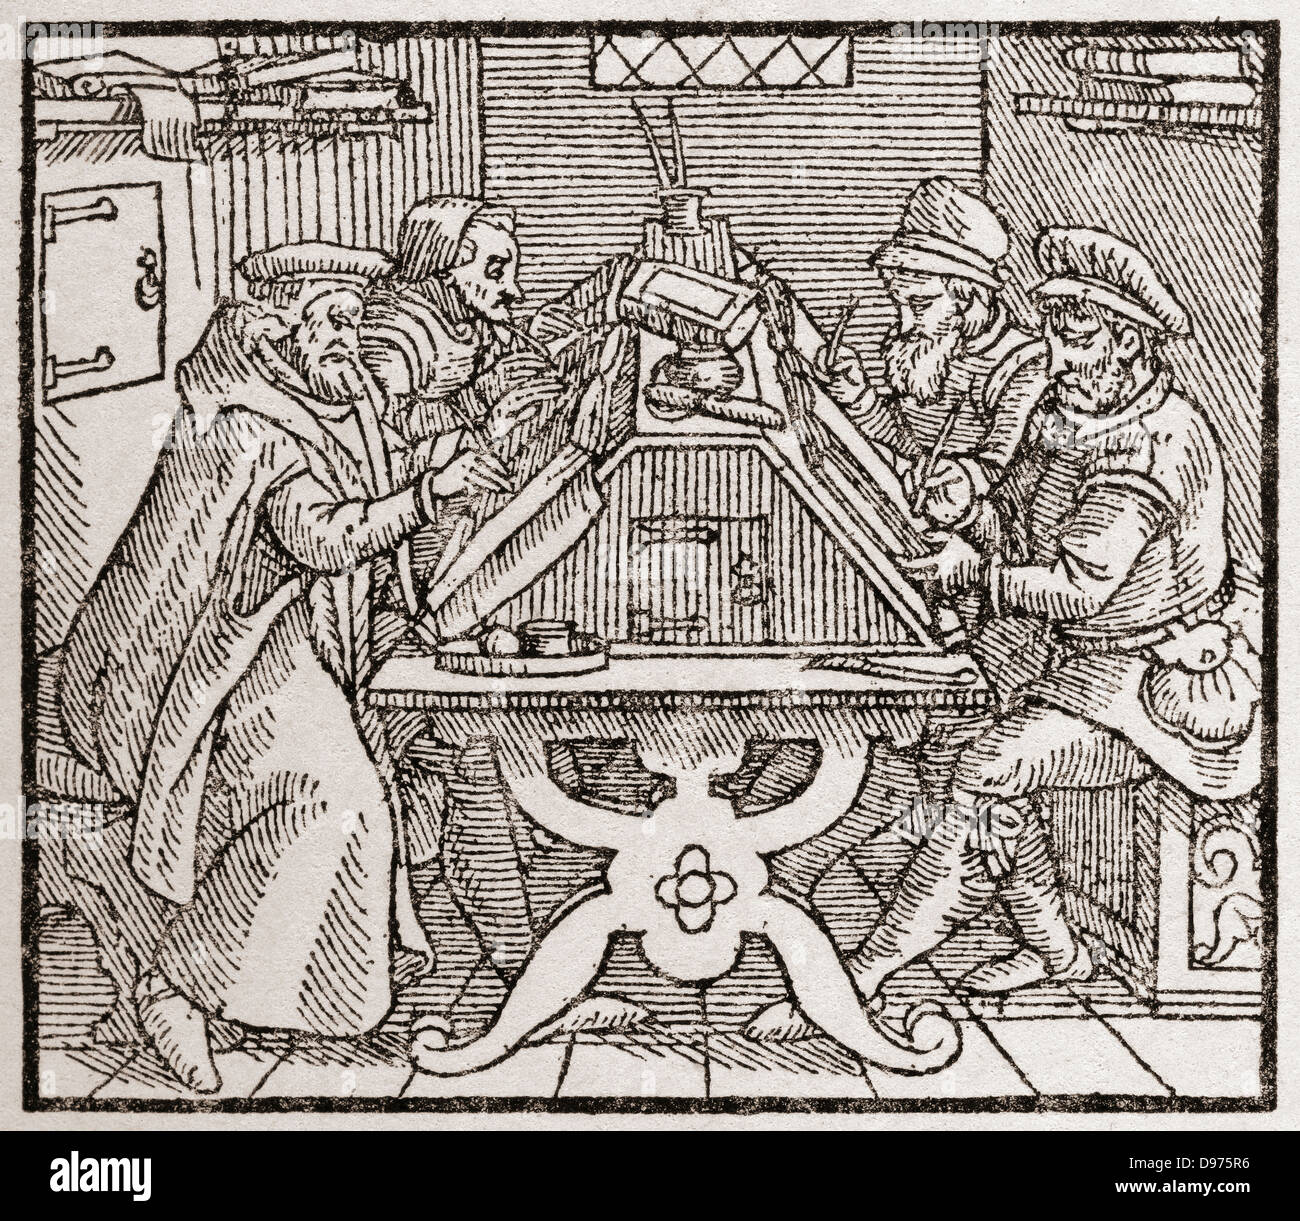 Scribes at work during the Tudor period in England. From a contemporary print. - Stock Image